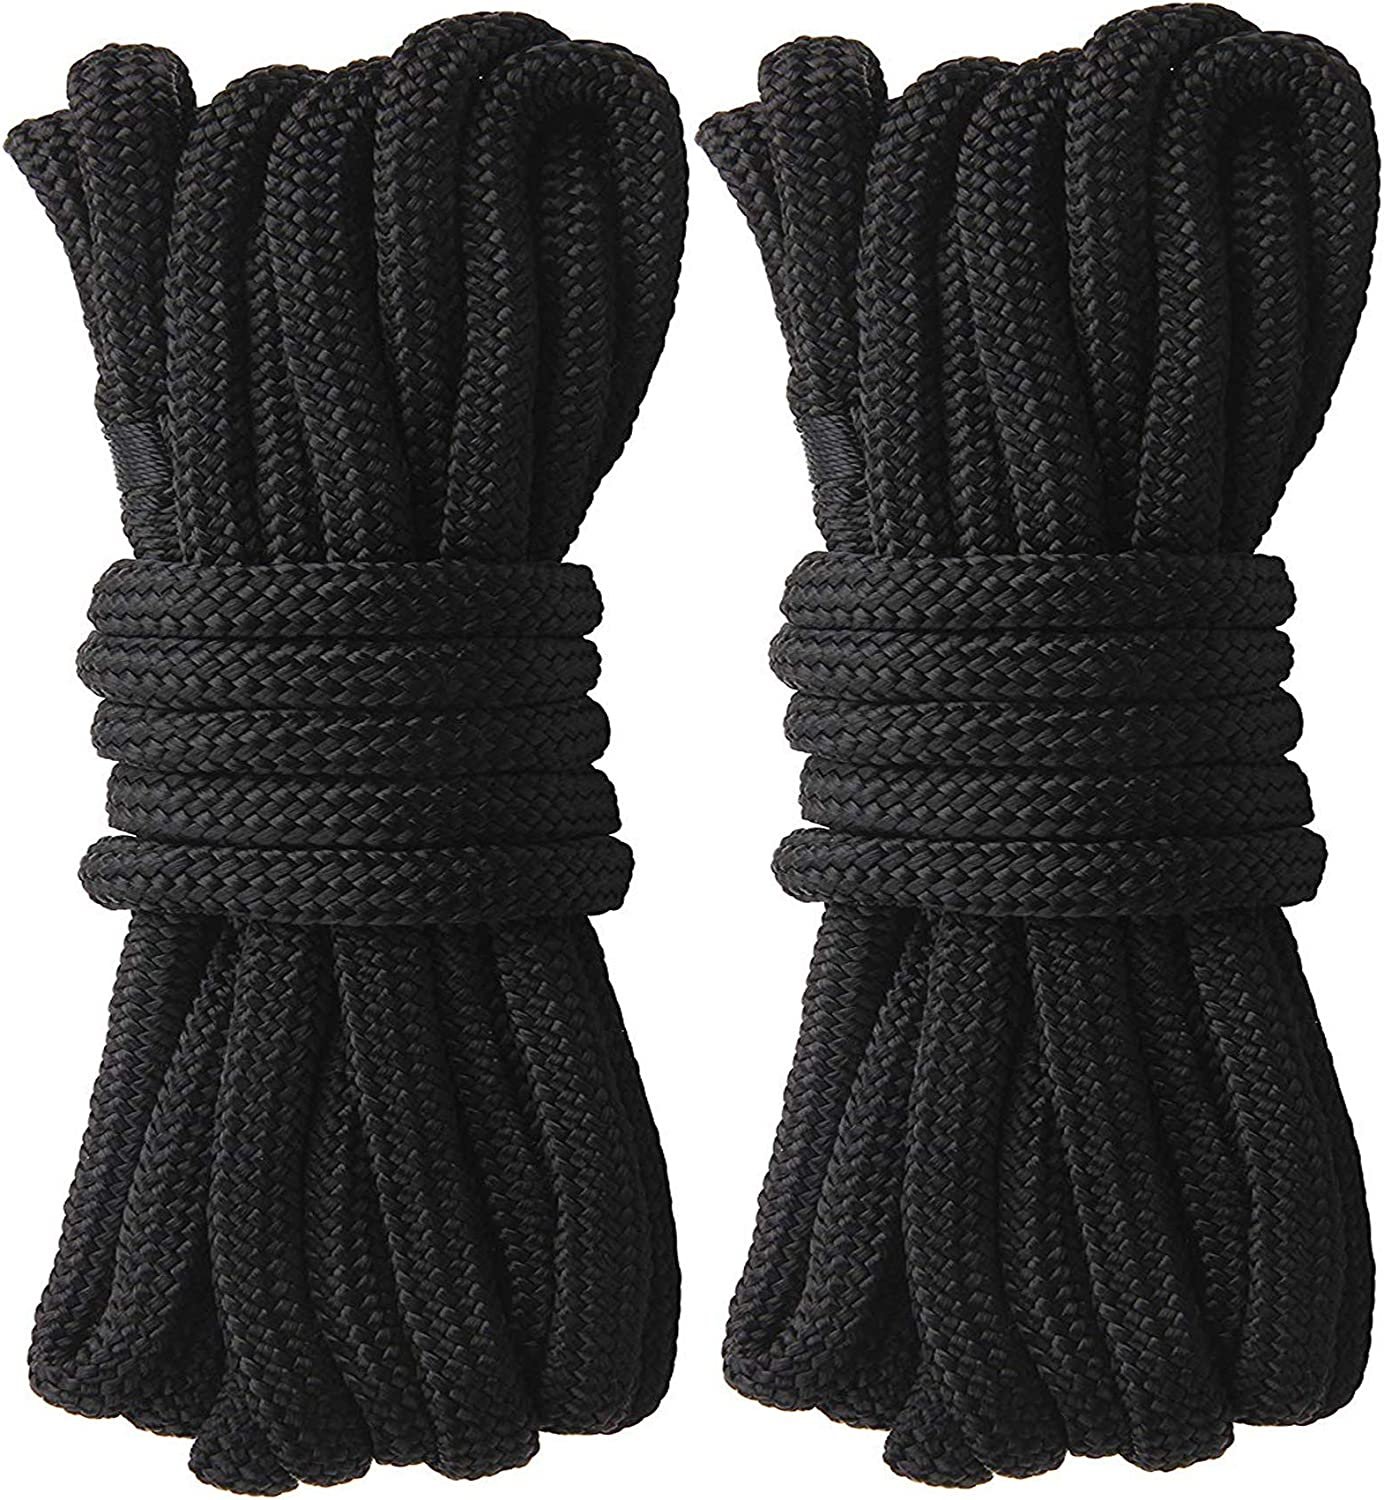 Dia:3//8inch,1//2inch,5//8inch JSHANMEI Dock Lines Rope-2pack 25FT Double Braided Boat Docking Lines Mooring Lines with 12inch Eyelet Anchor Line Boat Equipment